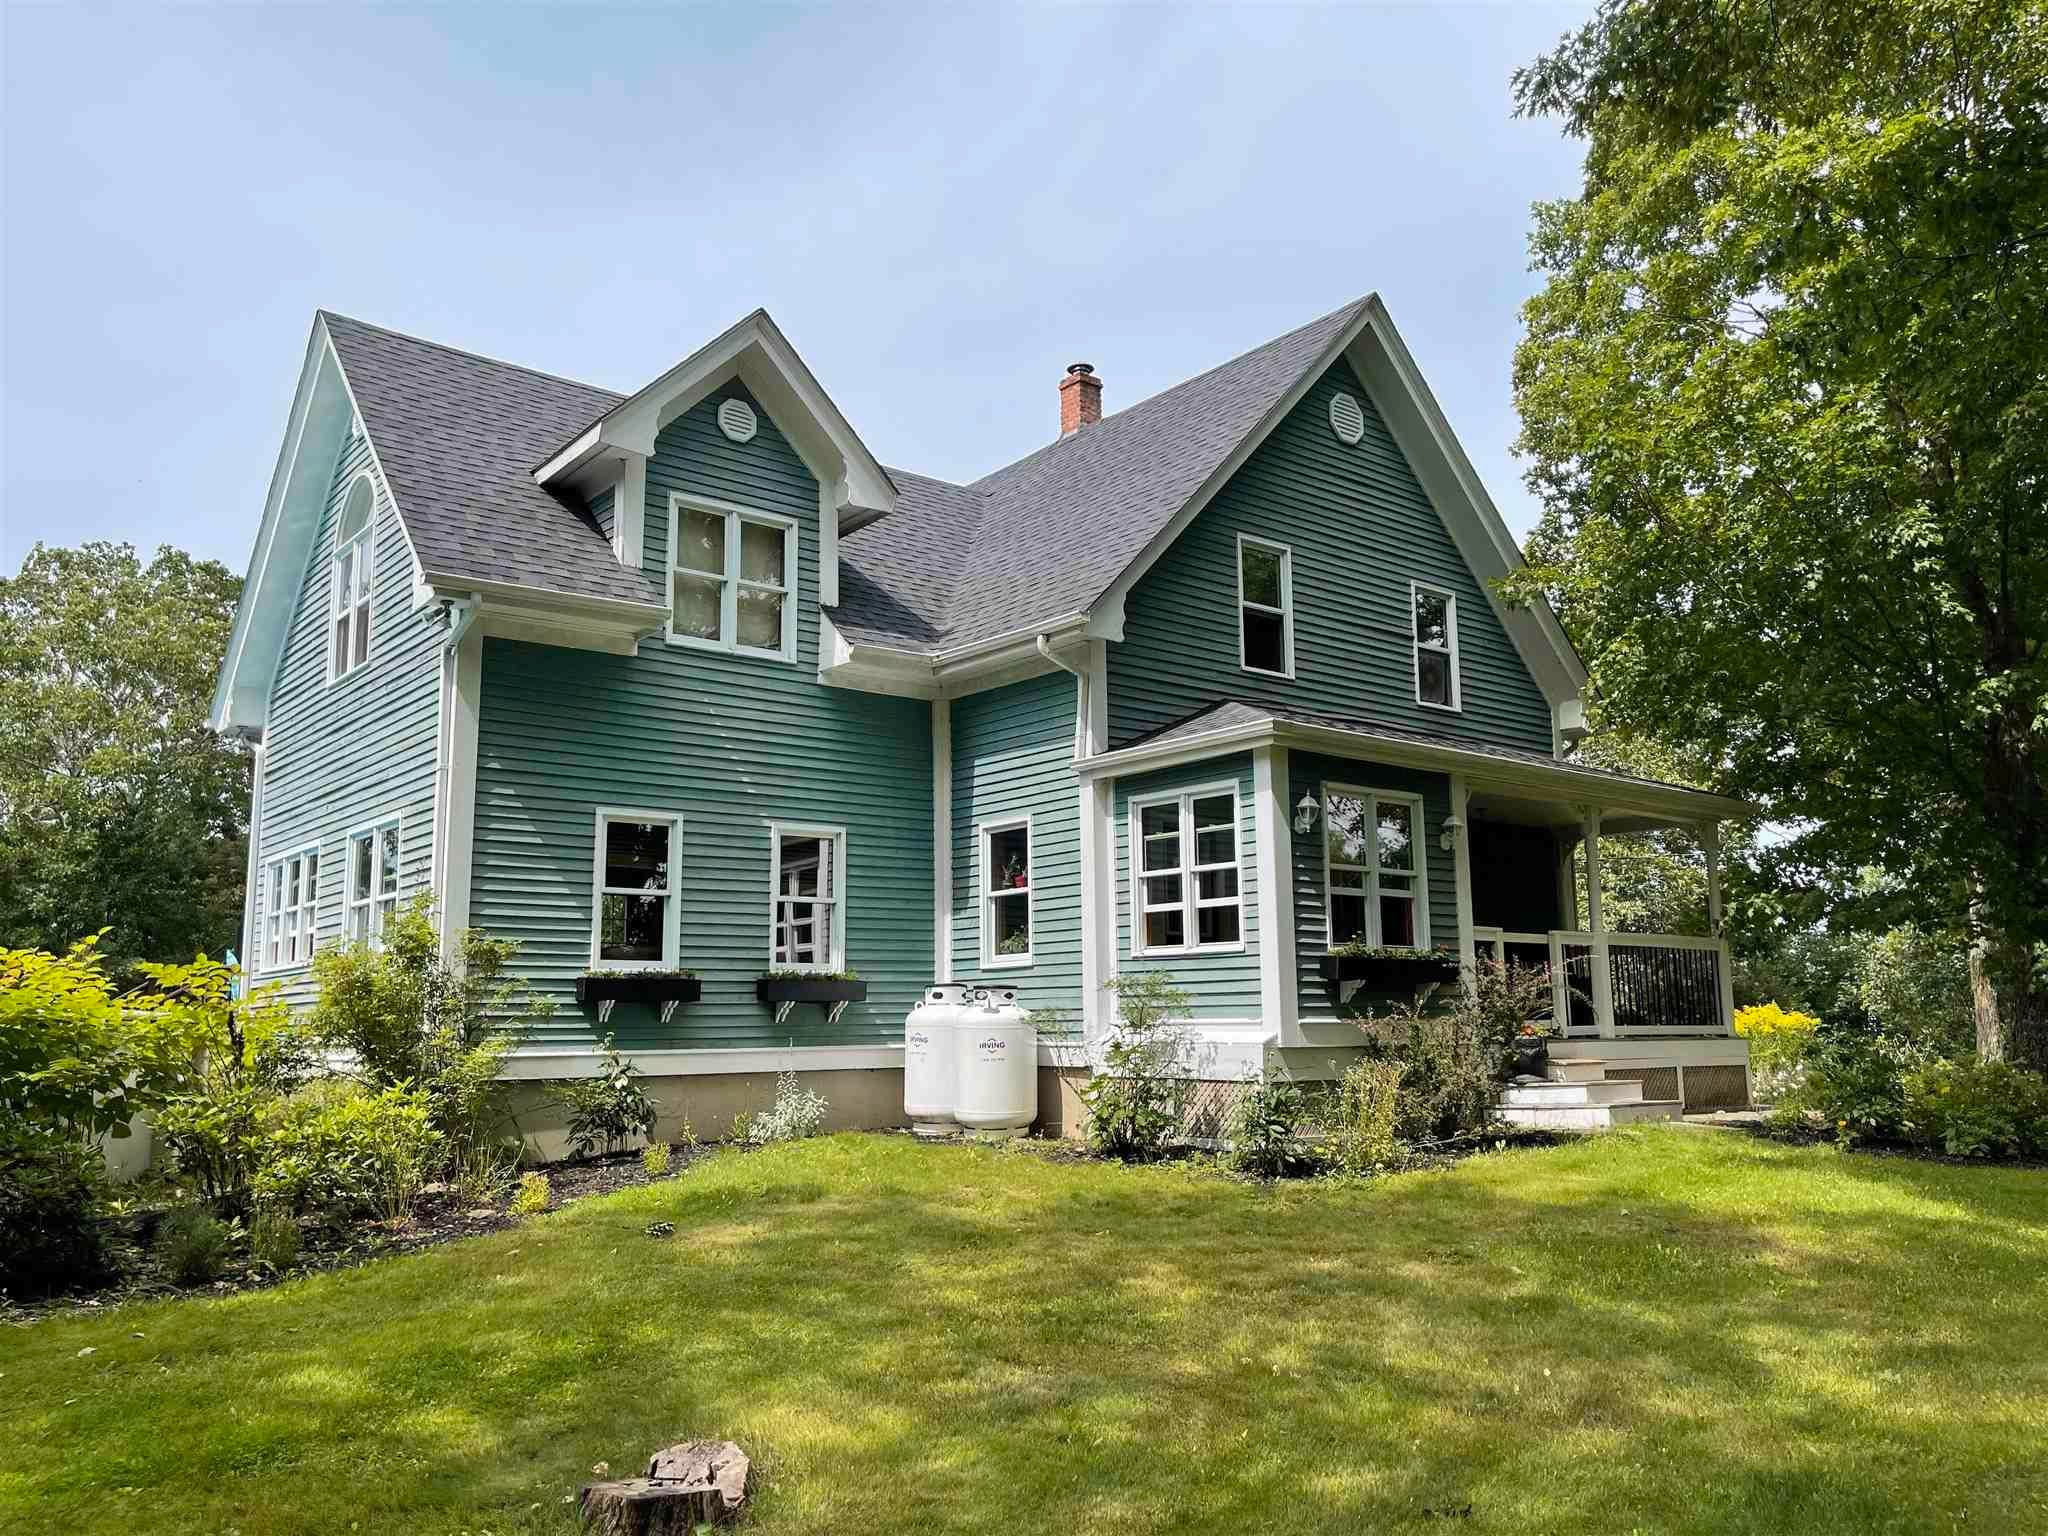 Main Photo: 6221 East River West Side Road in Eureka: 108-Rural Pictou County Residential for sale (Northern Region)  : MLS®# 202120568